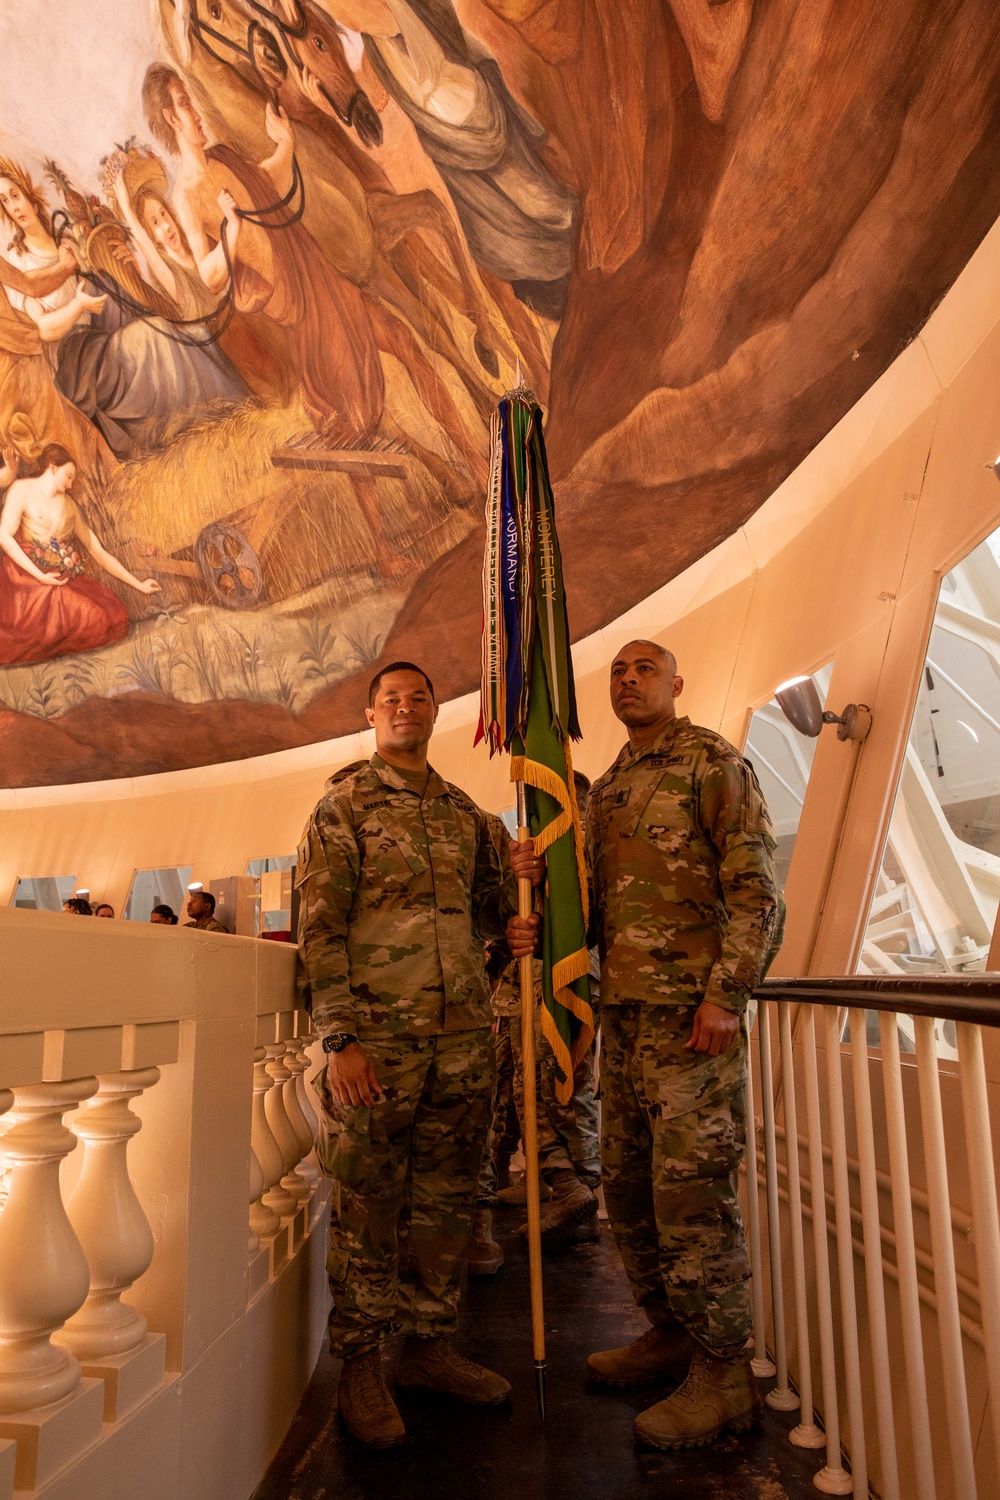 National Guard members pose for a photo in the U.S. Capitol on final day of security mission